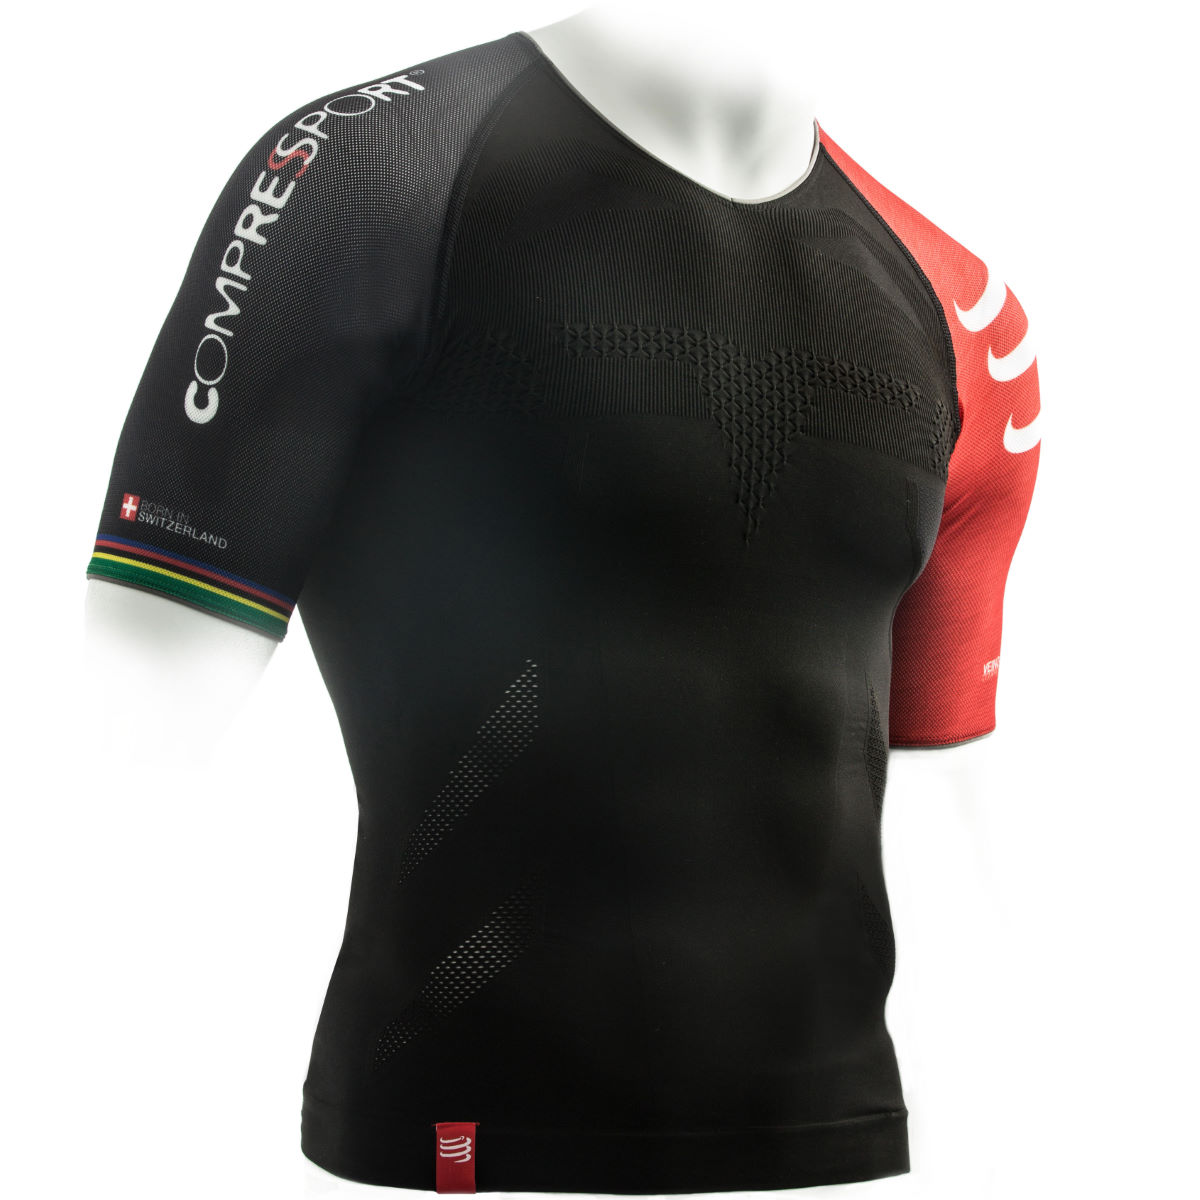 Compressport Triathlon Shirt